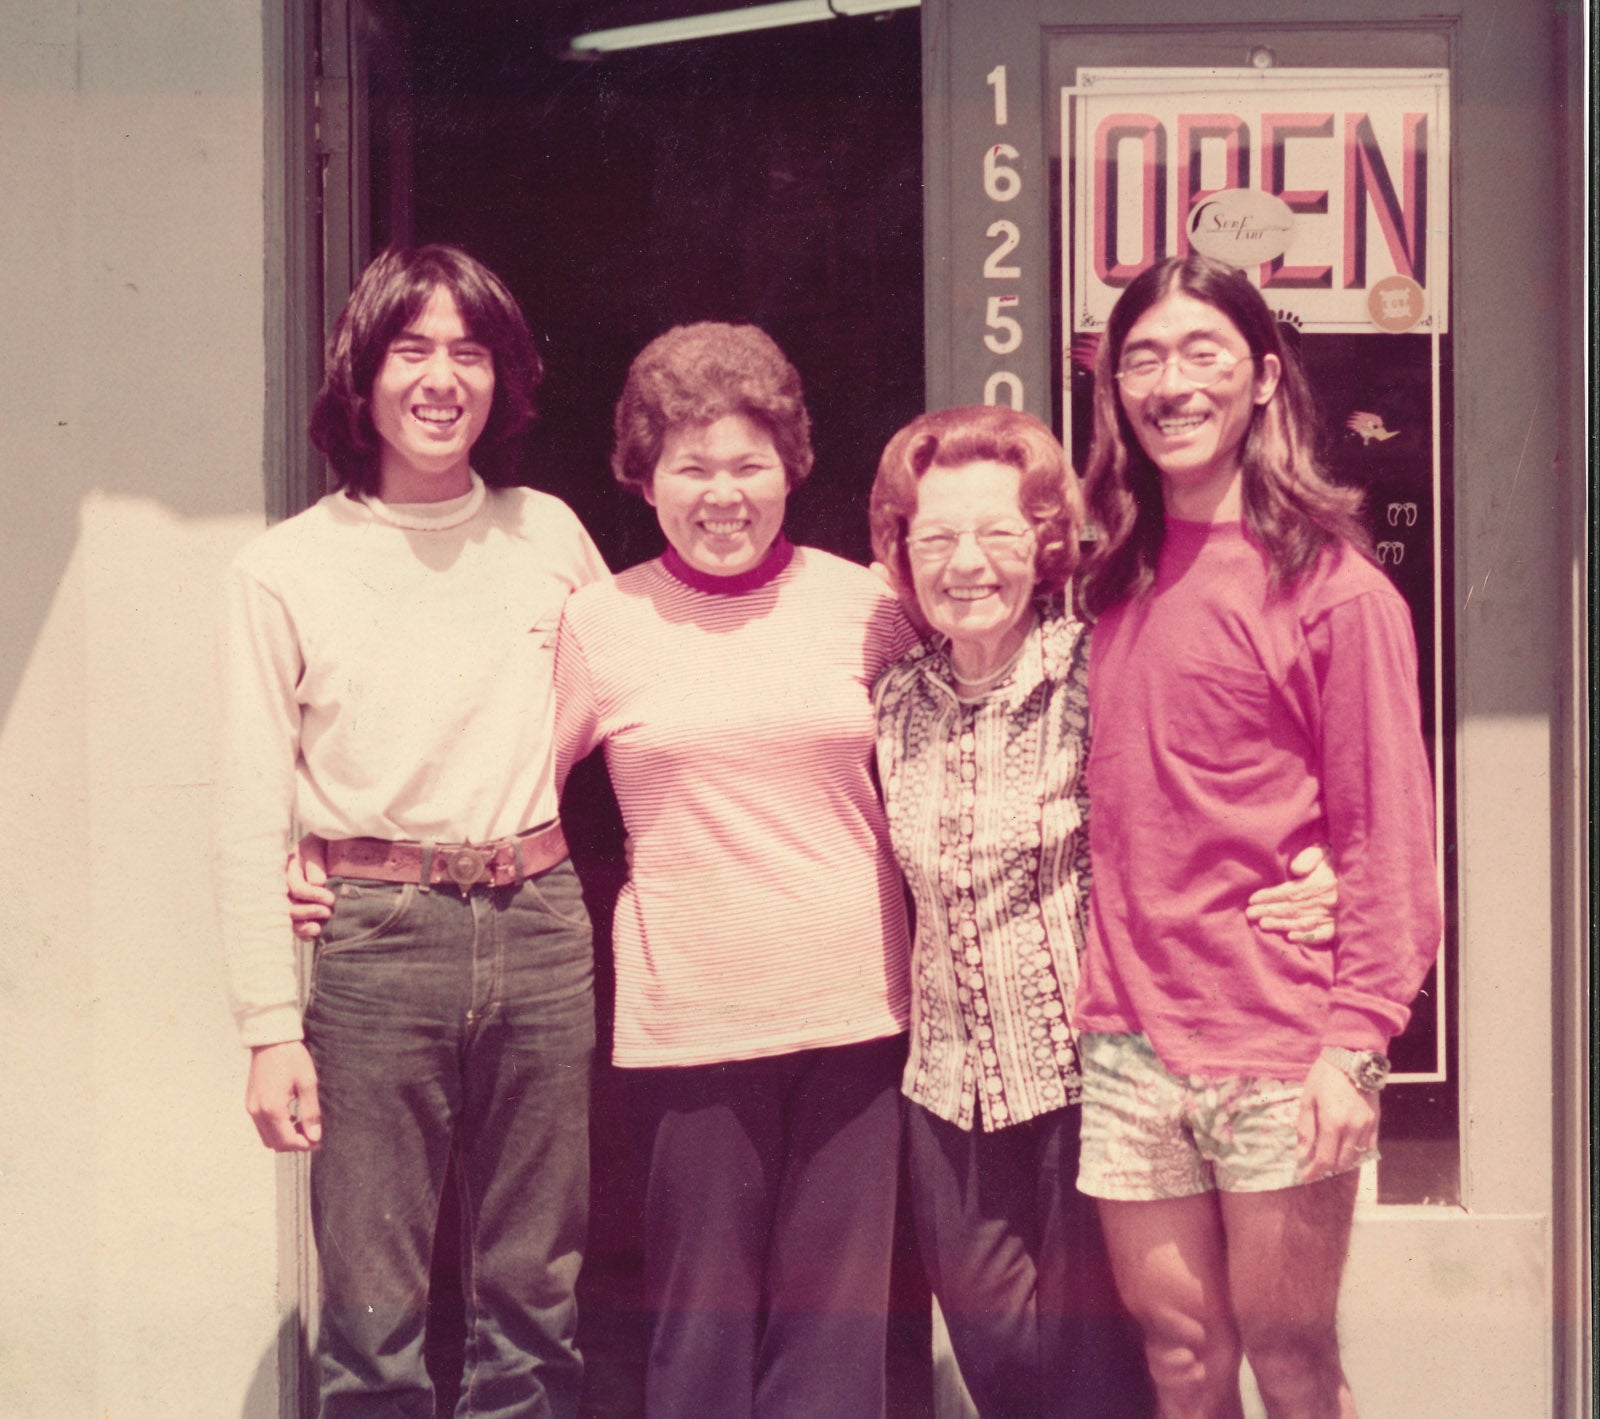 Sato & Nancy with friends in front of the Katin store.